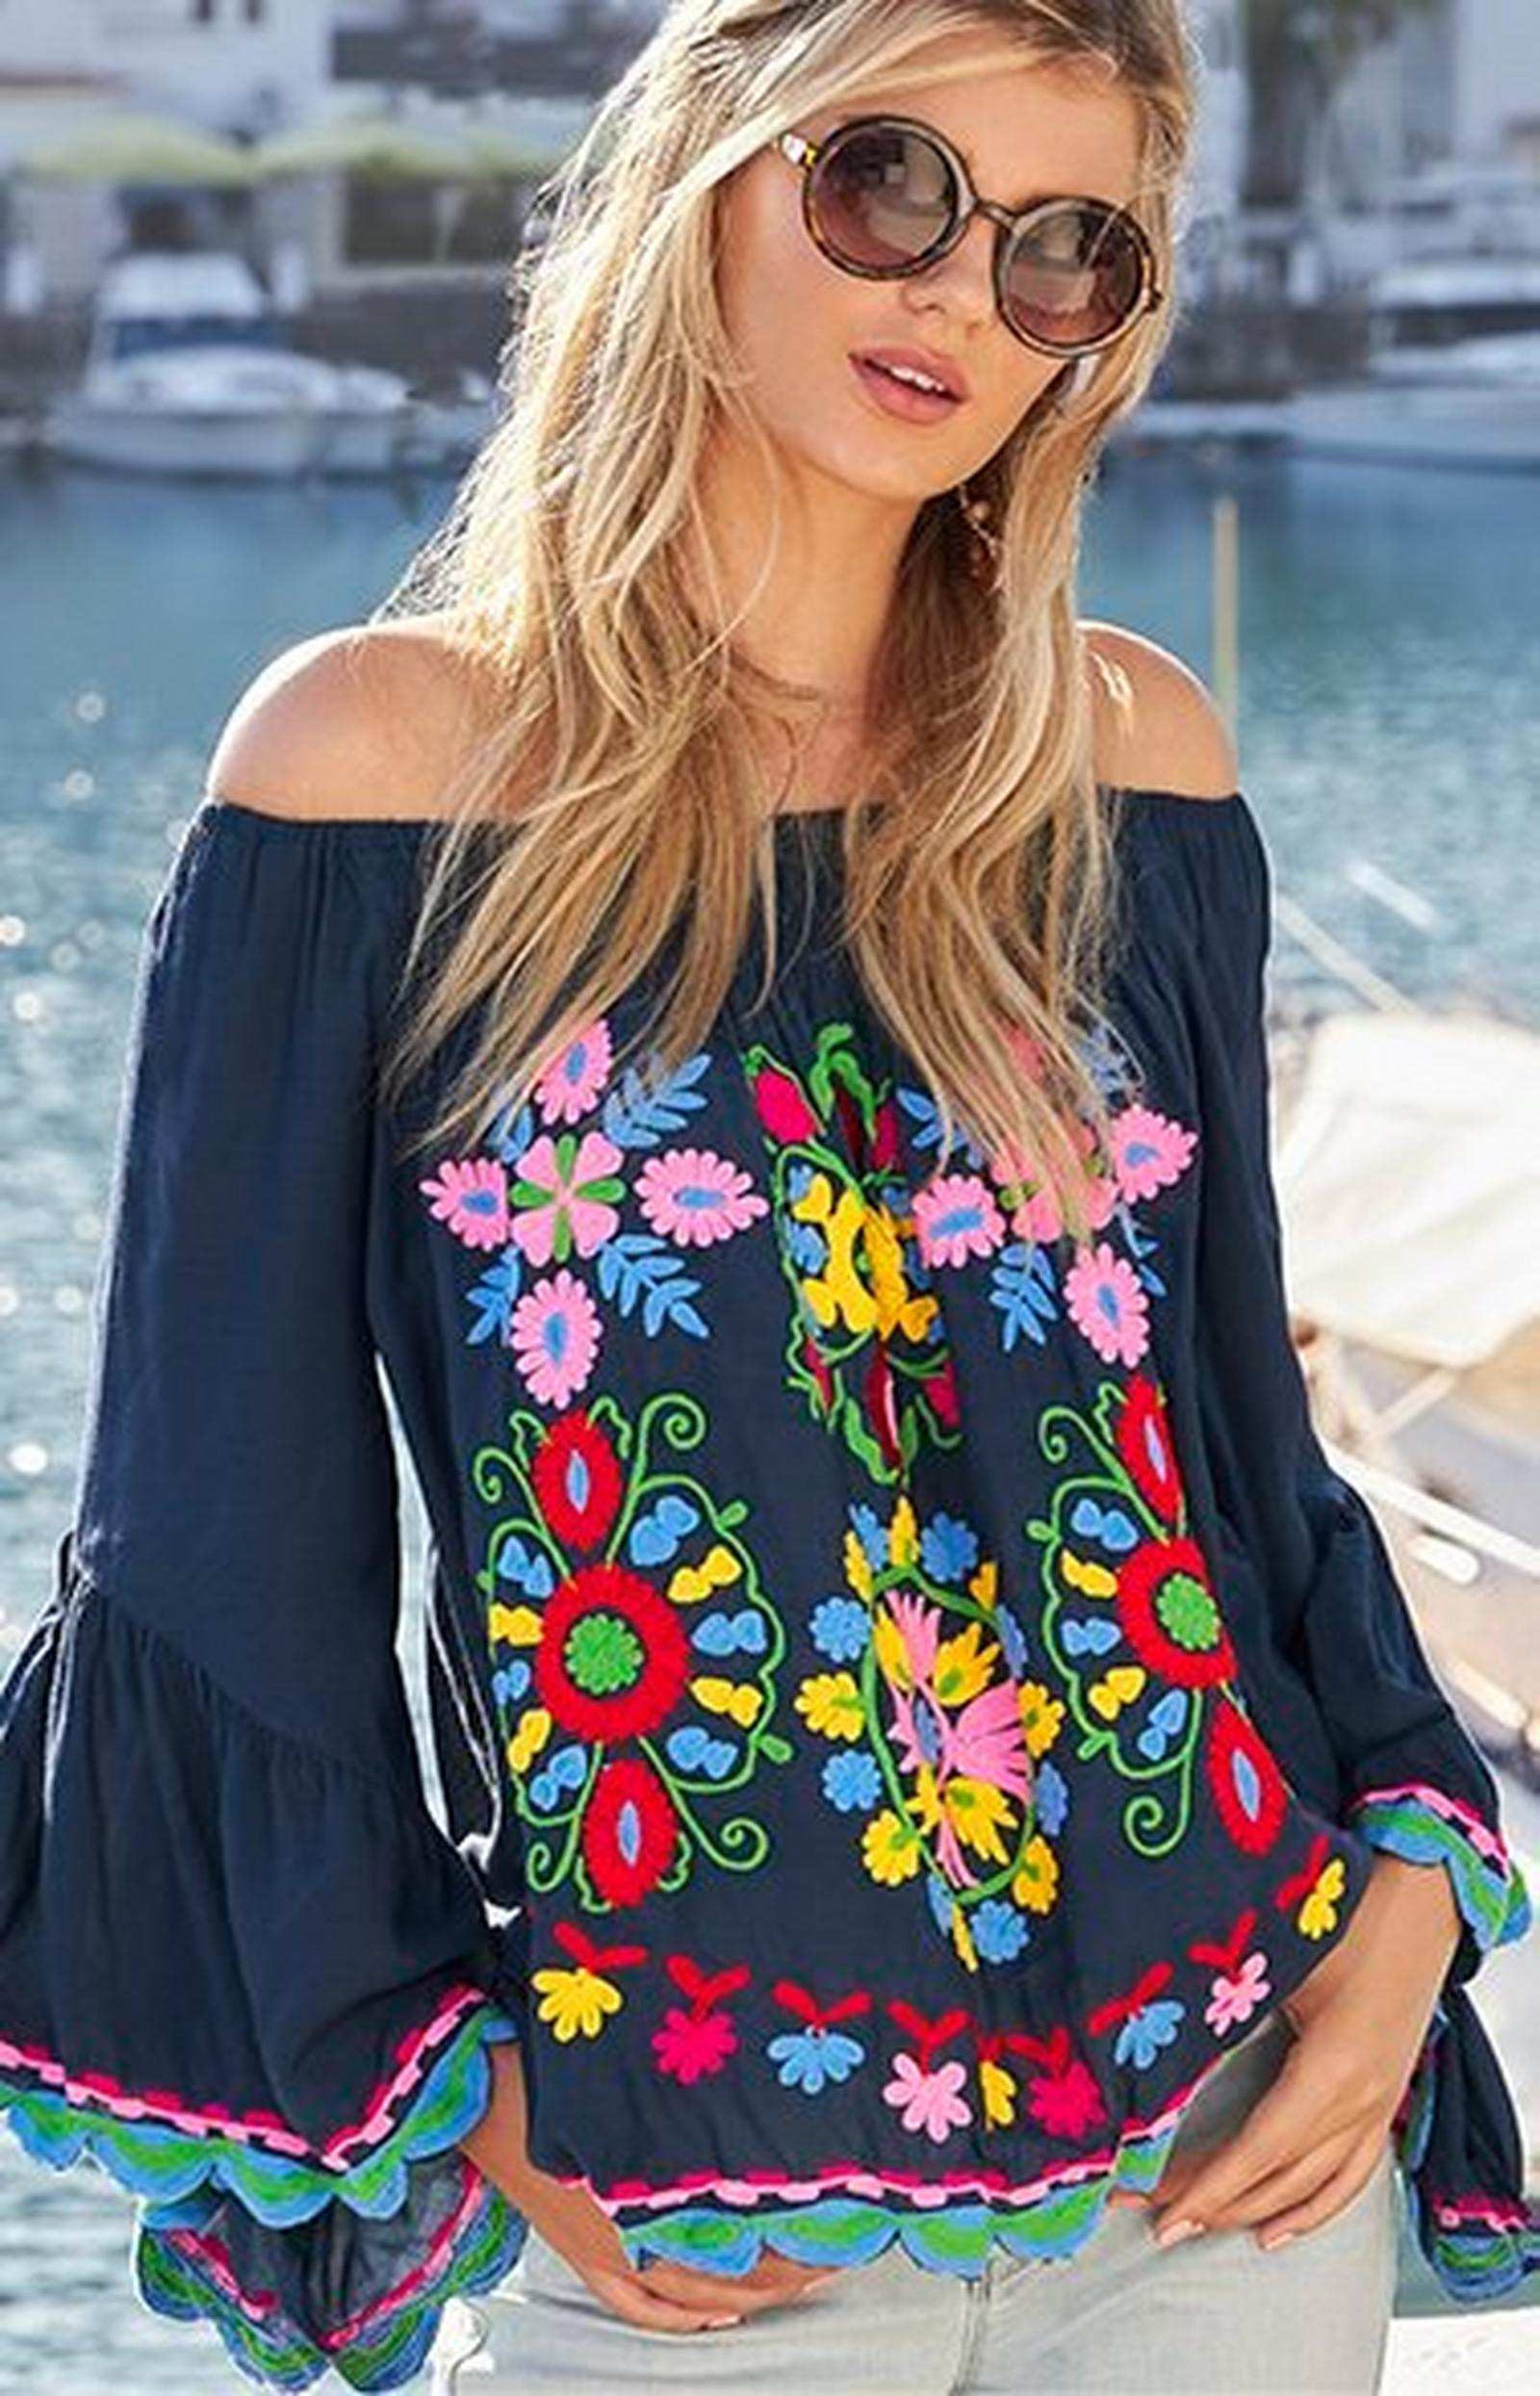 model wearing a navy off-the-shoulder flare-sleeve top with multicolored floral embroidery, jean shorts, and sunglasses.